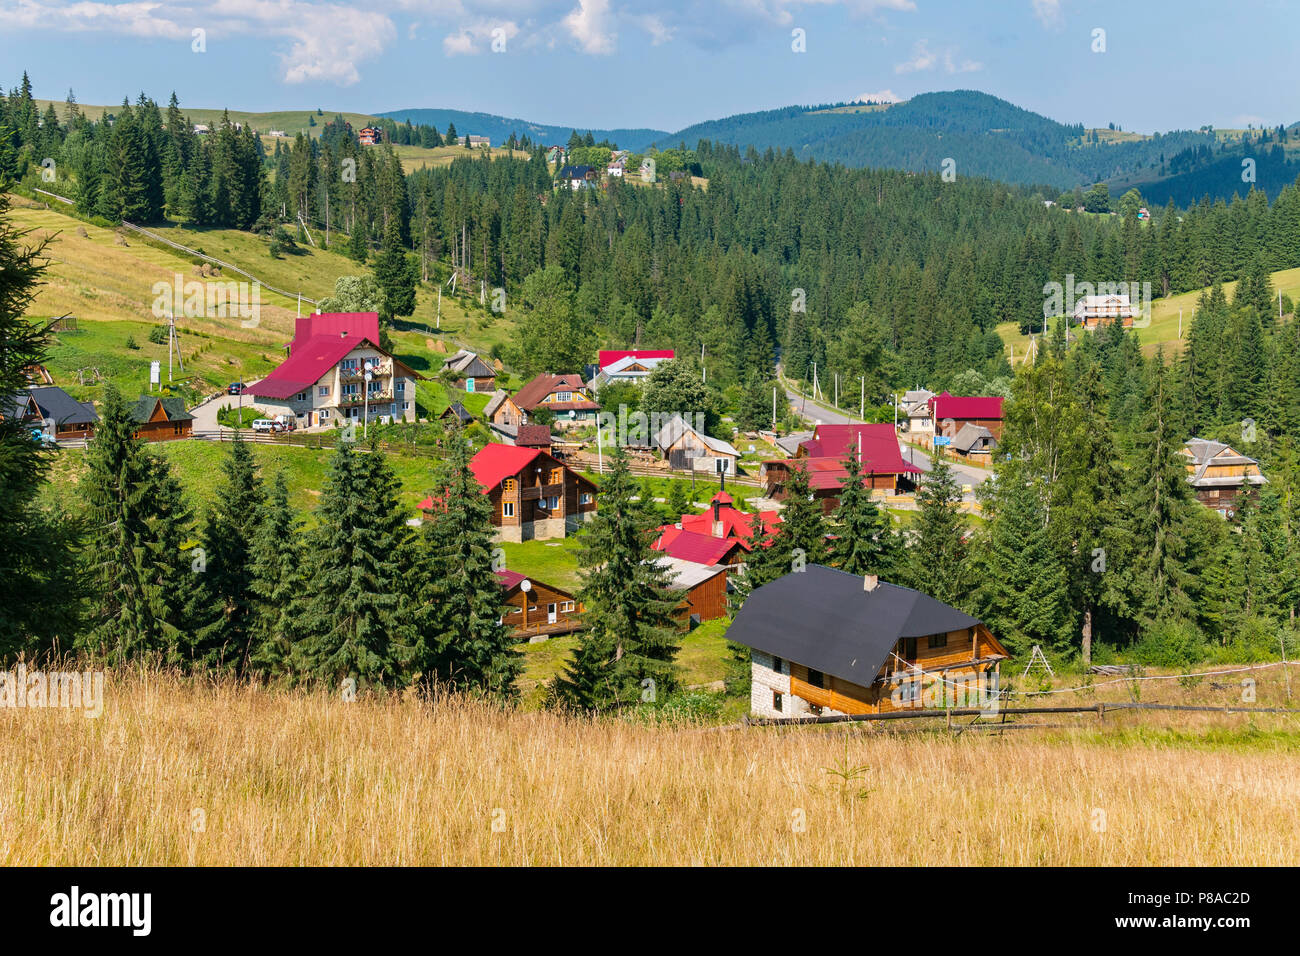 beautiful roofs of modern houses in a mountainous area surrounded by green spruces . For your design - Stock Image